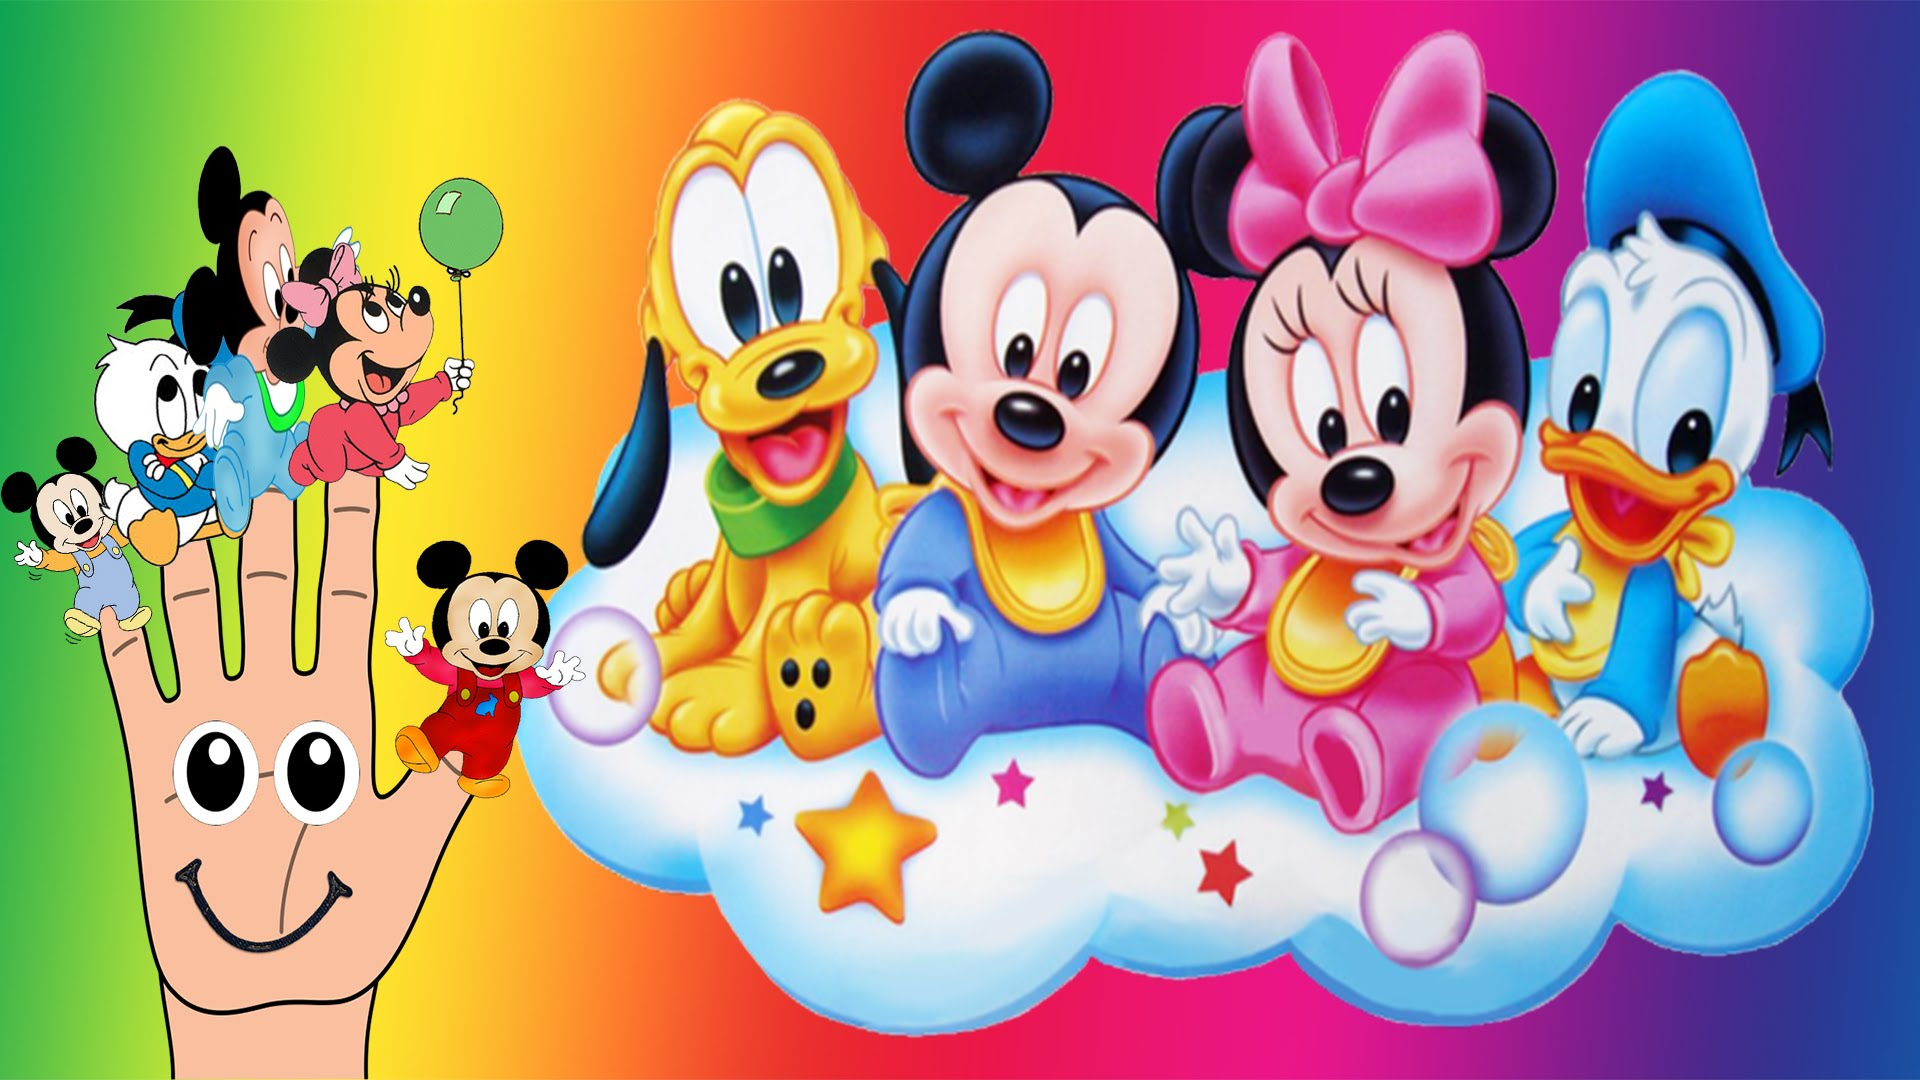 Download Cute Tweety Wallpapers Adorable Baby Mickey Mouse Pluto Minnie Donald Duck